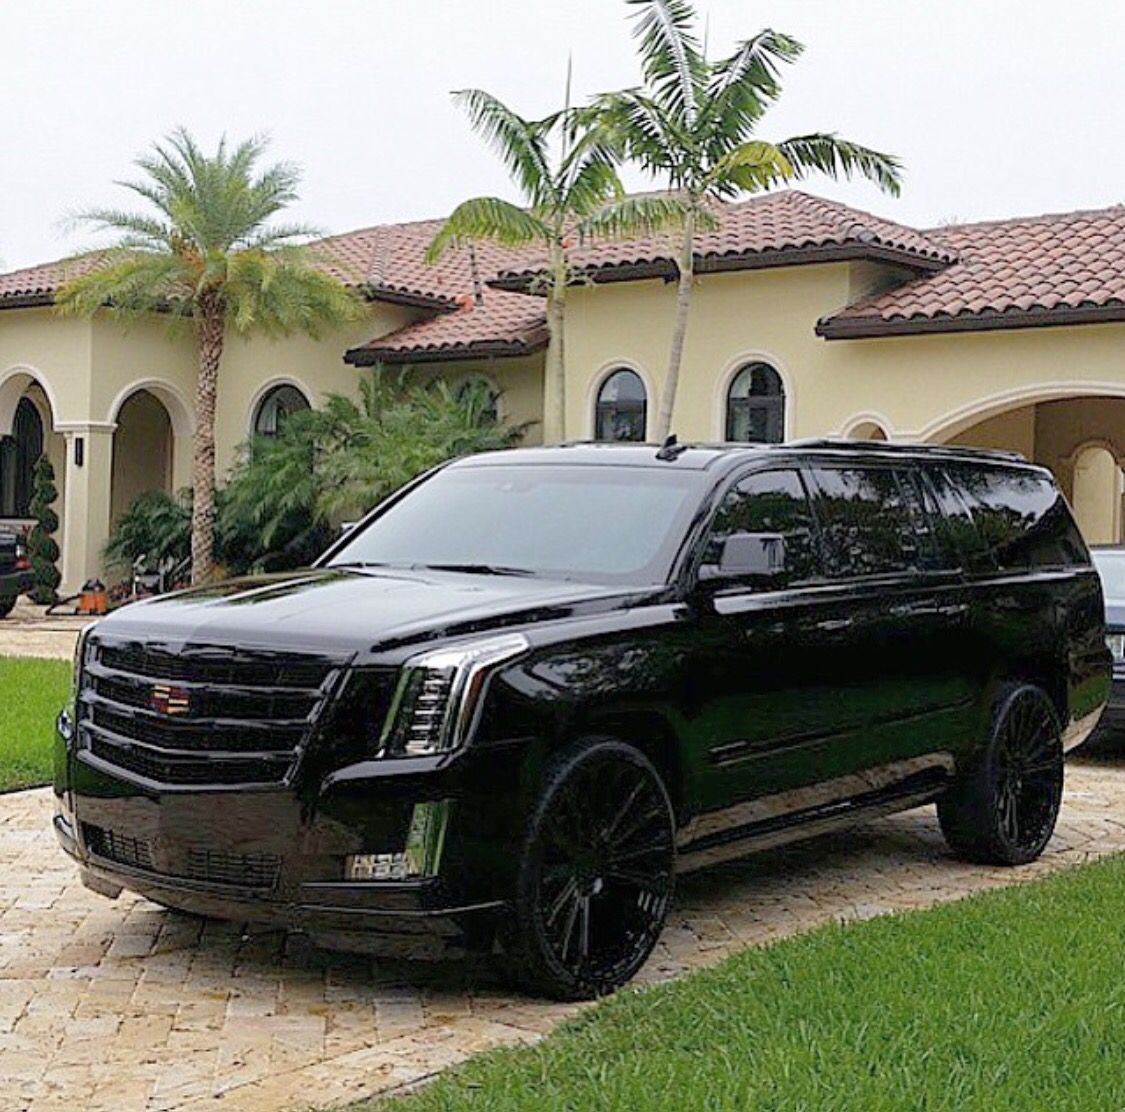 This Picture Represents The New Cadillac Escalade I Will Be Driving In 2018 And My Florida Vacation Home